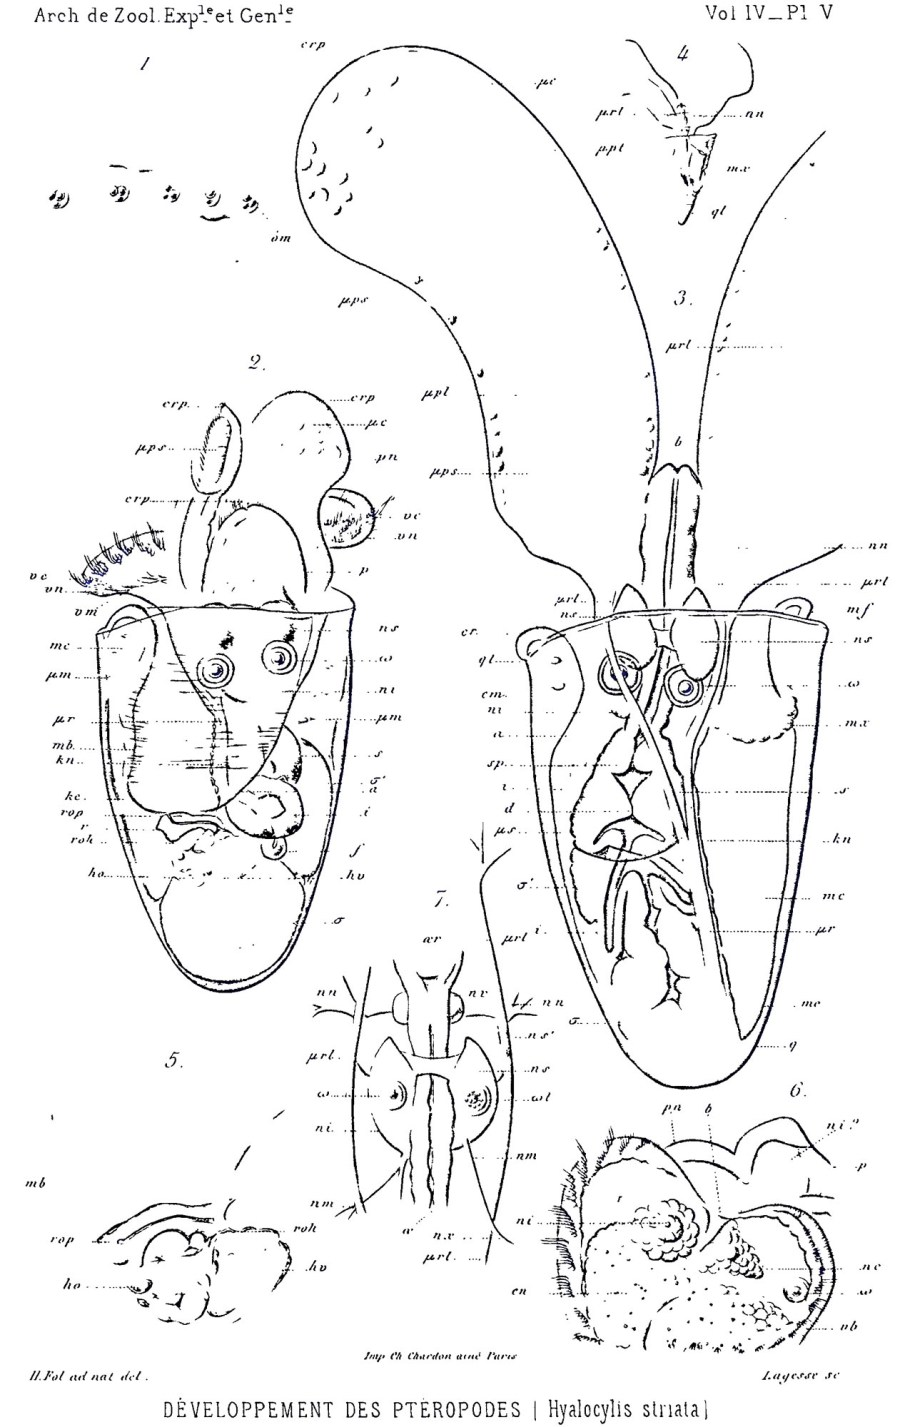 Hyalocylis striata by Fol, 1875